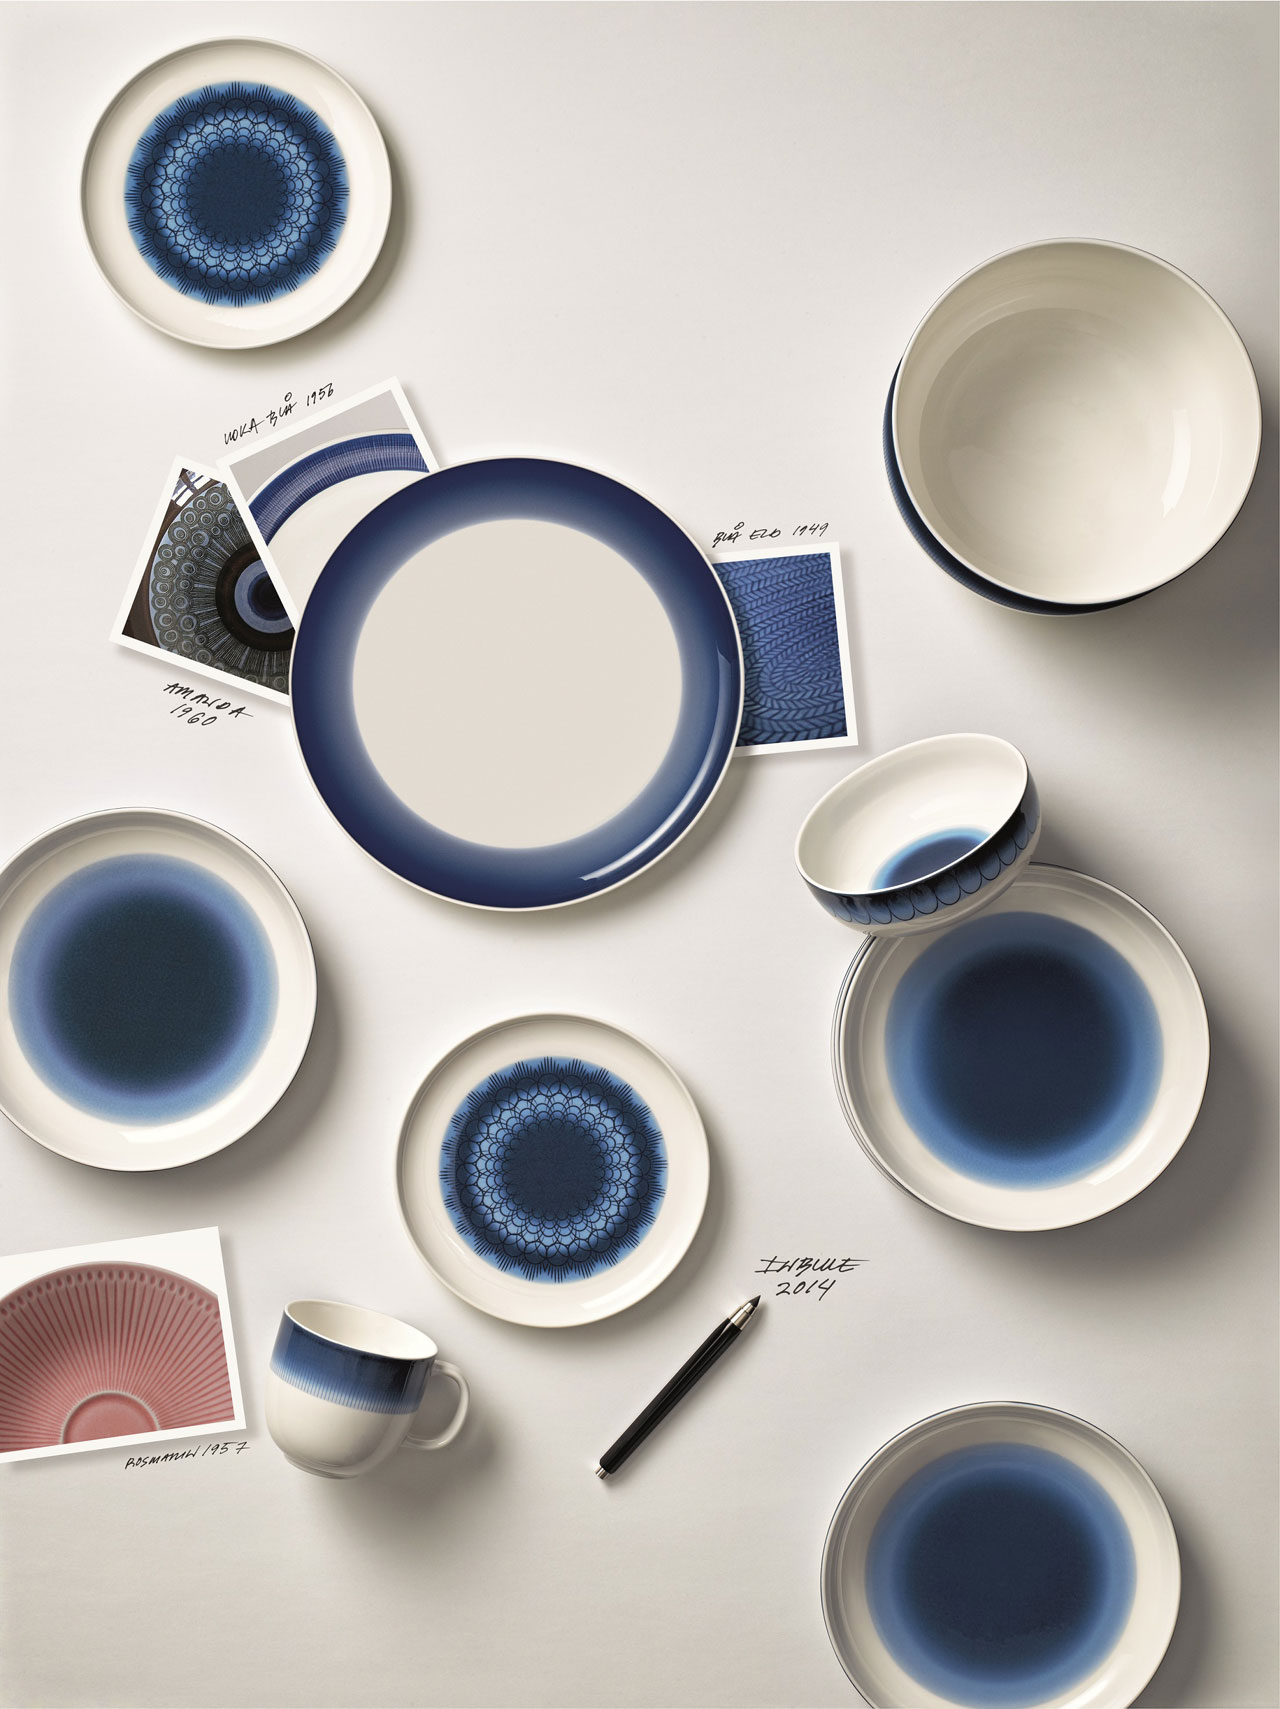 Inblue porcelain tableware by Monica Förster for Rörstrand.